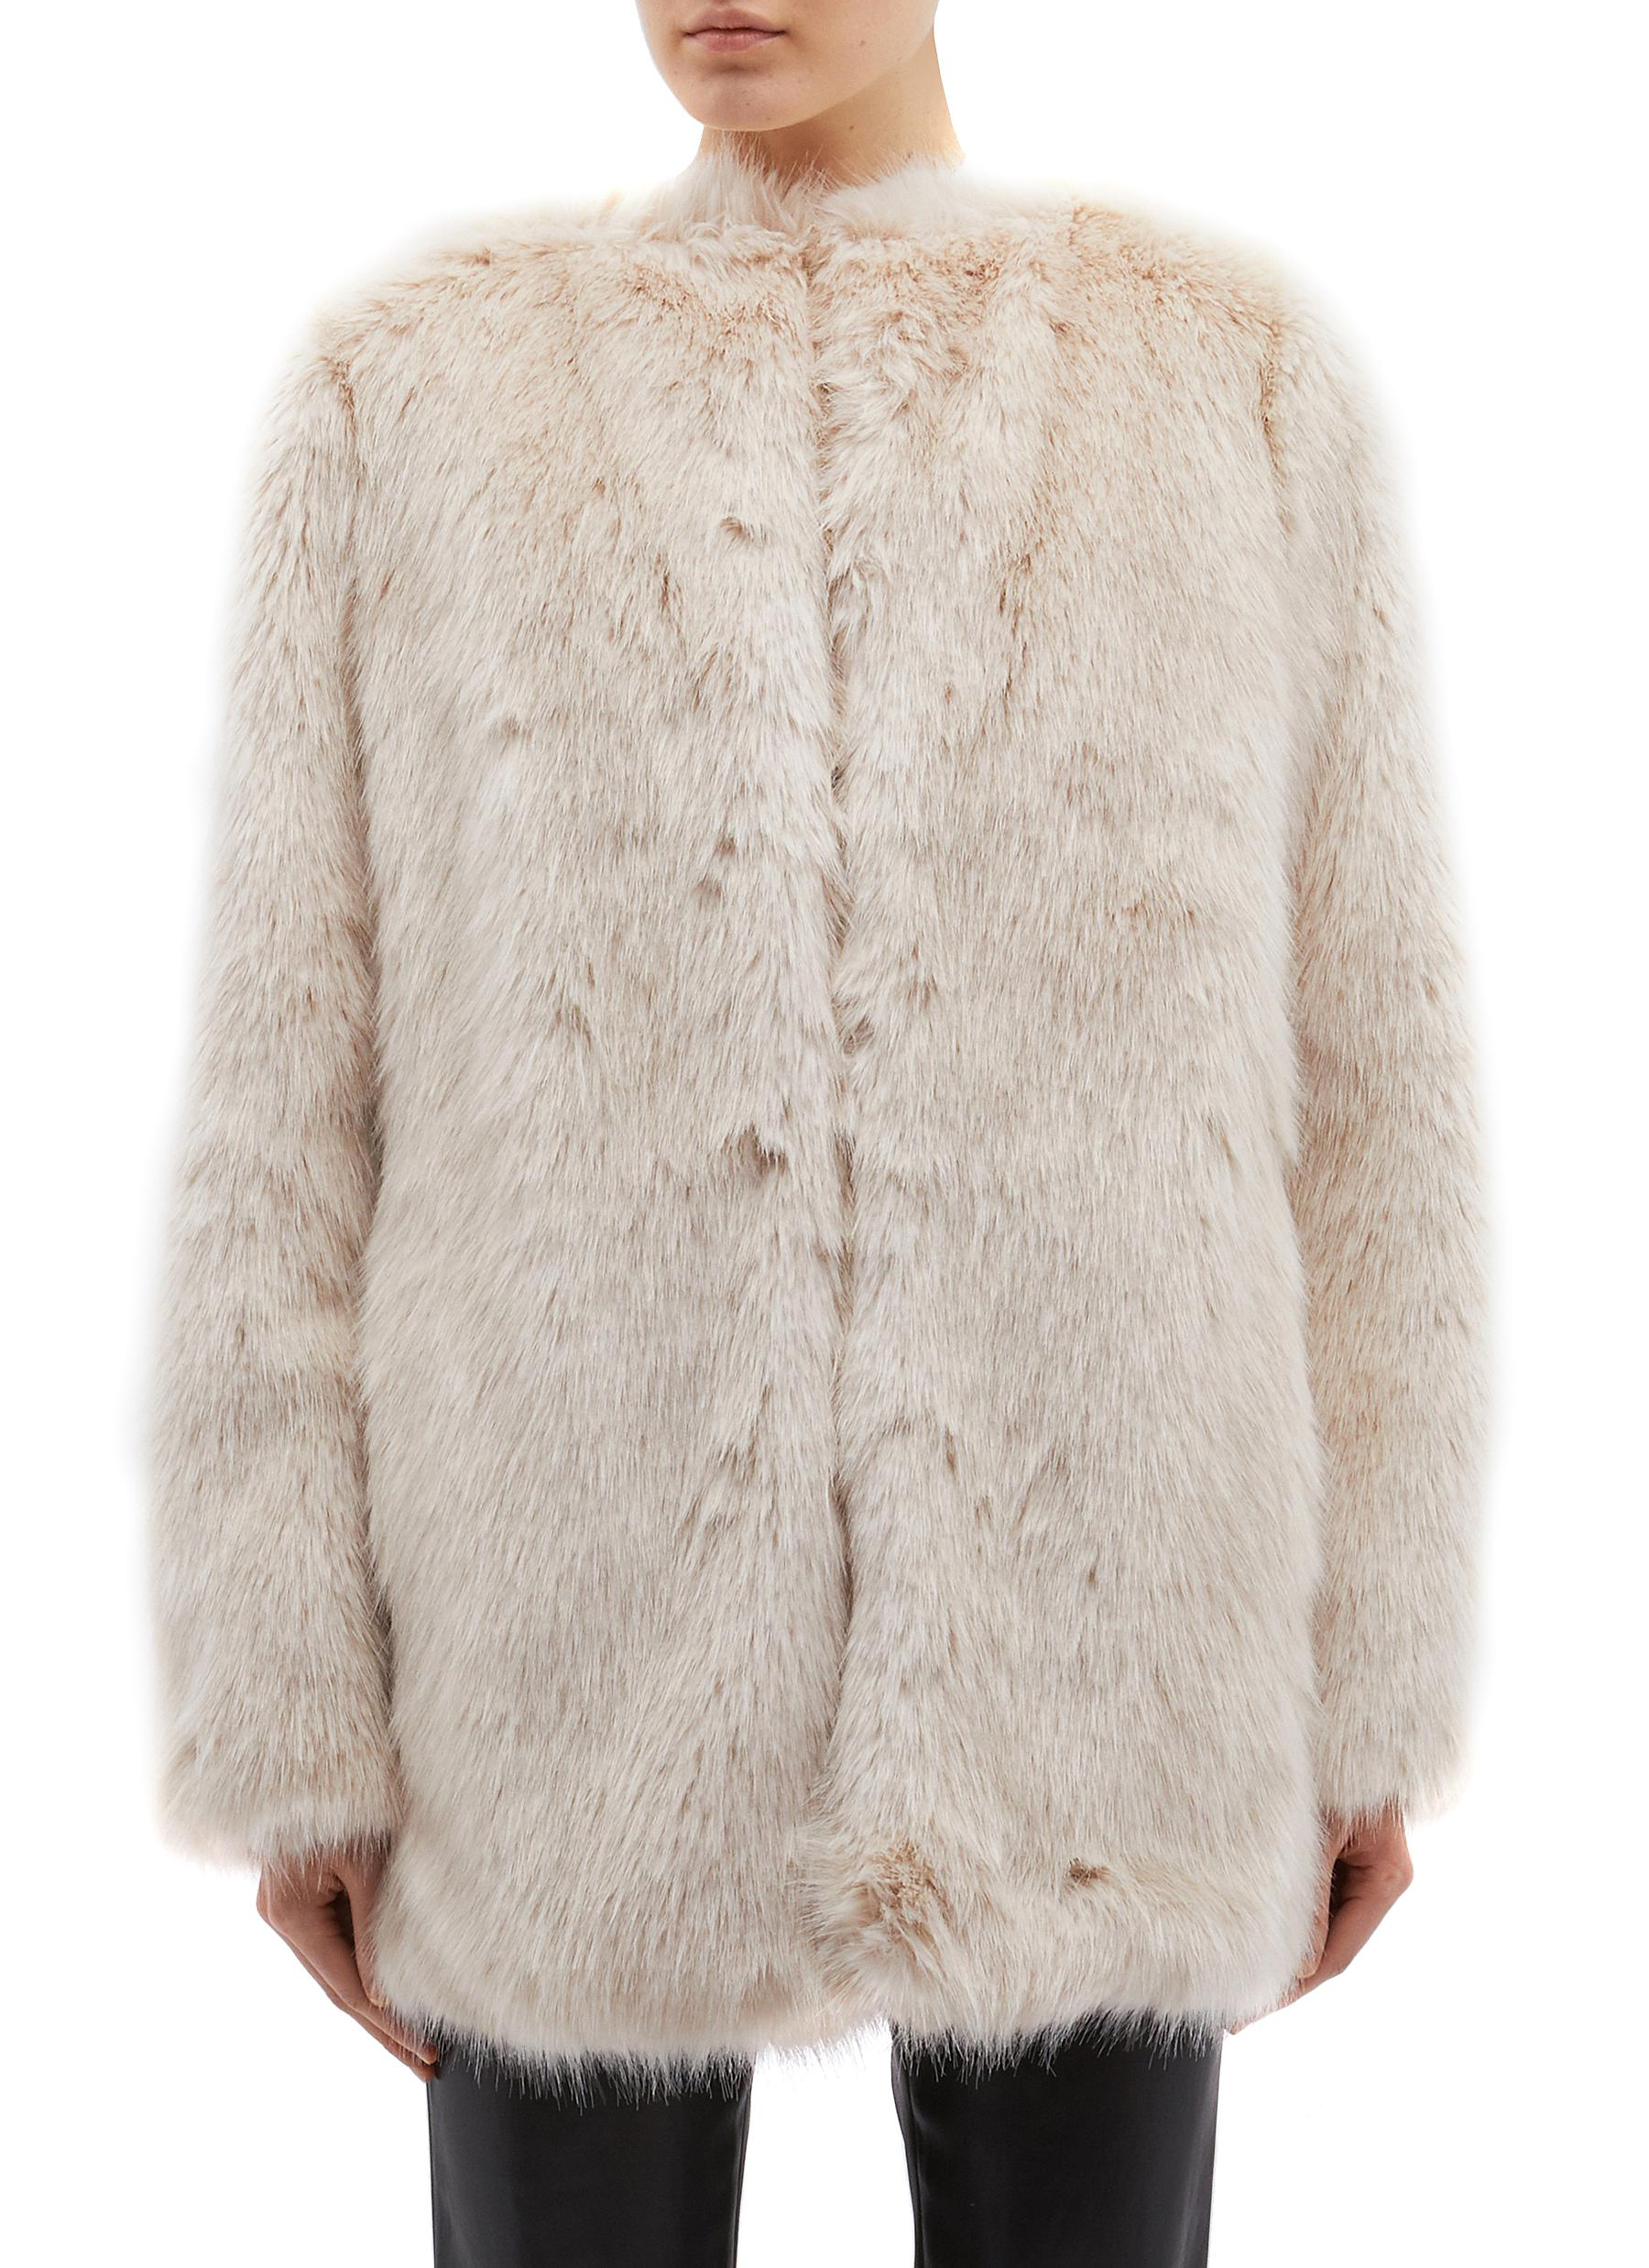 Faux fur oversized coat by Helmut Lang